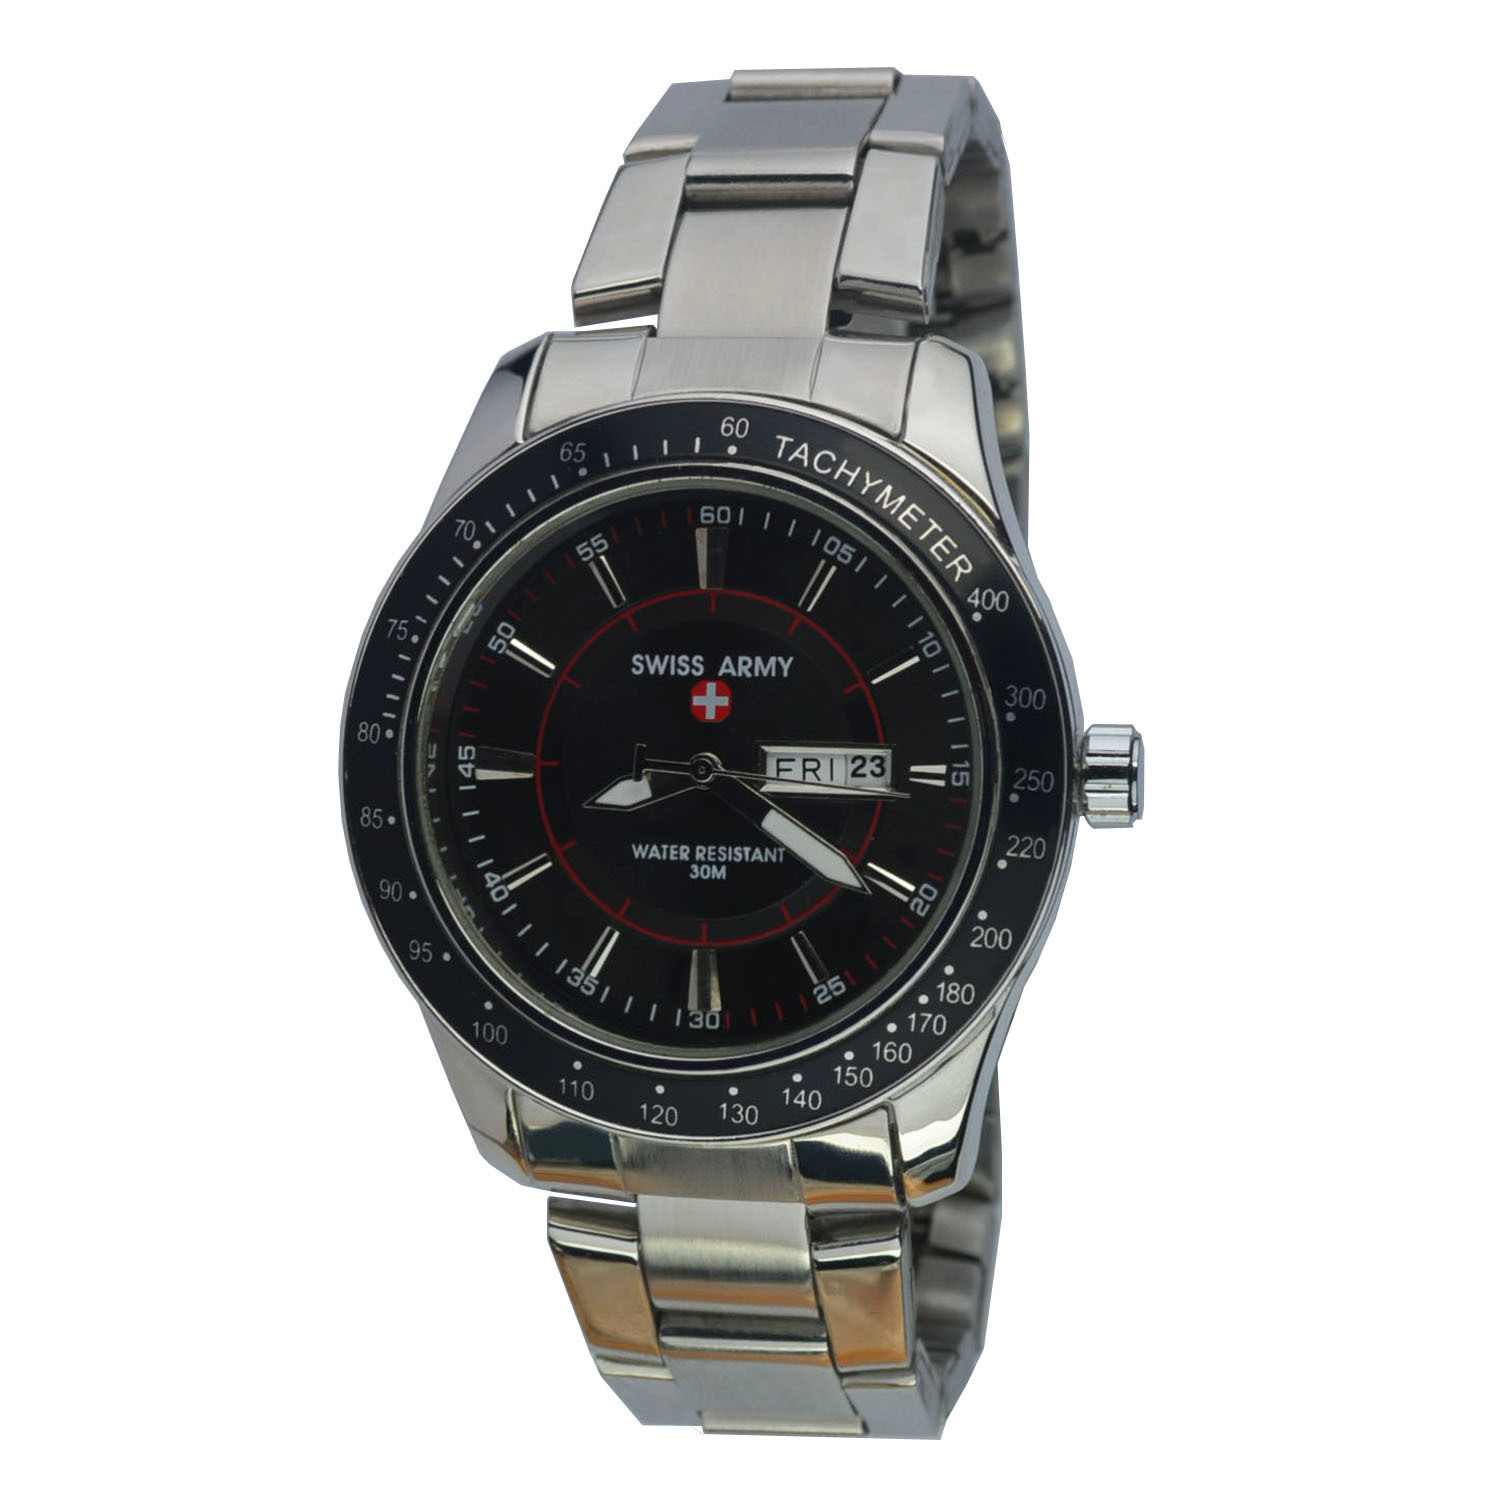 Dimana Beli Swiss Army Jam Tangan Pria Body Silver Black Dial Stainless Steel Band Sa Rt Tgl Hr P 5017 B Hitam Swiss Army